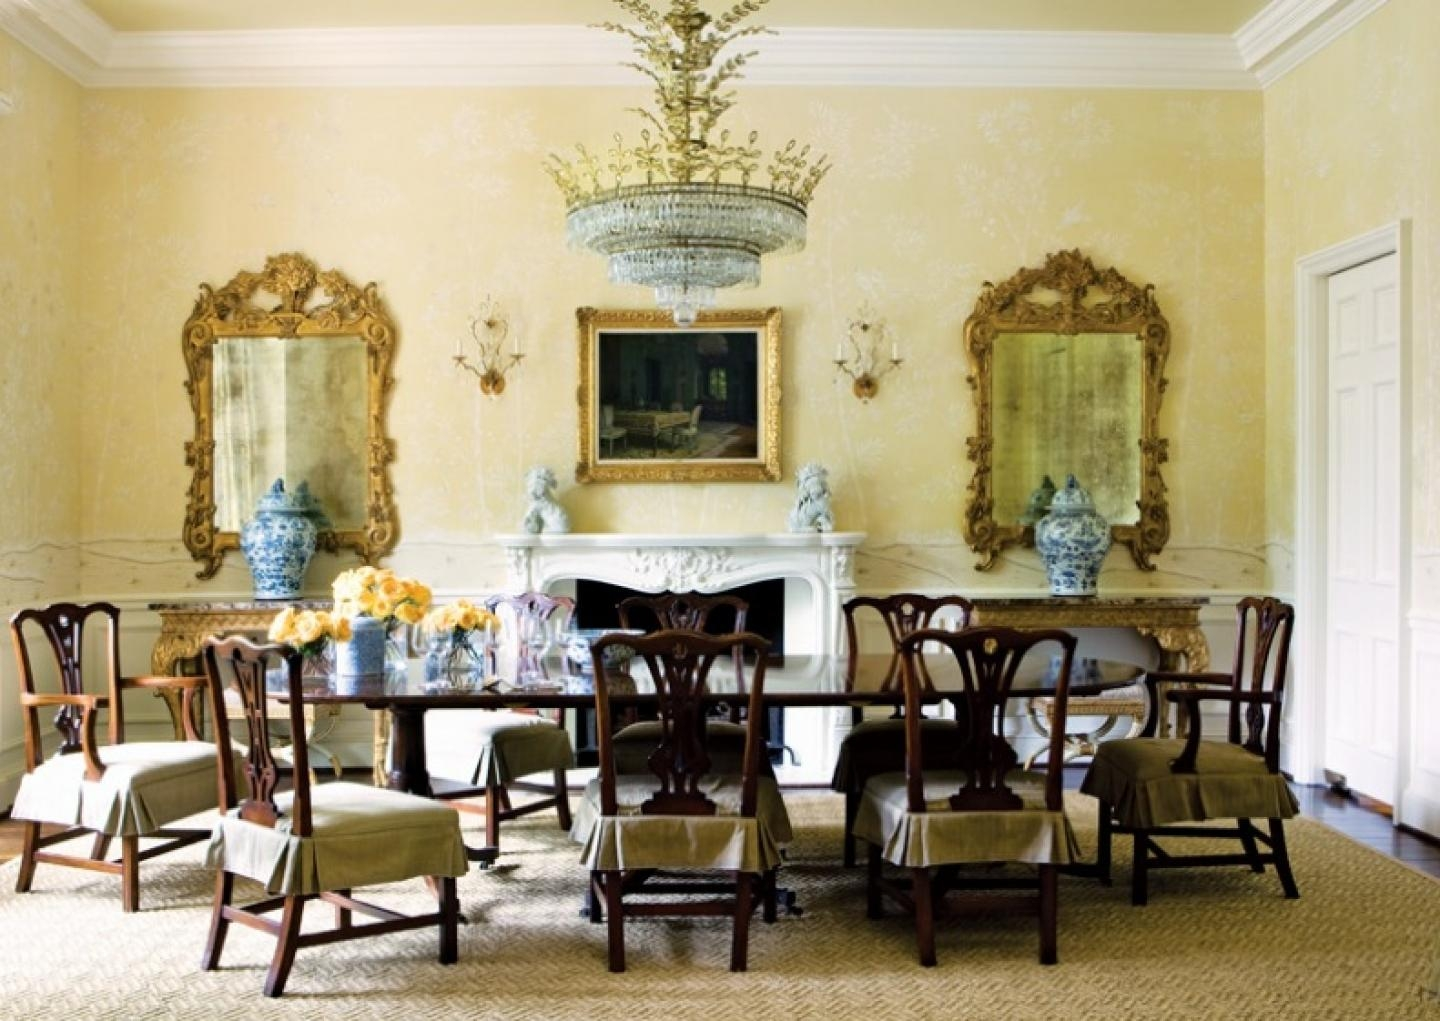 Wall Art Ideas: Formal Dining Room Wall Art (Explore #12 of 20 Photos)